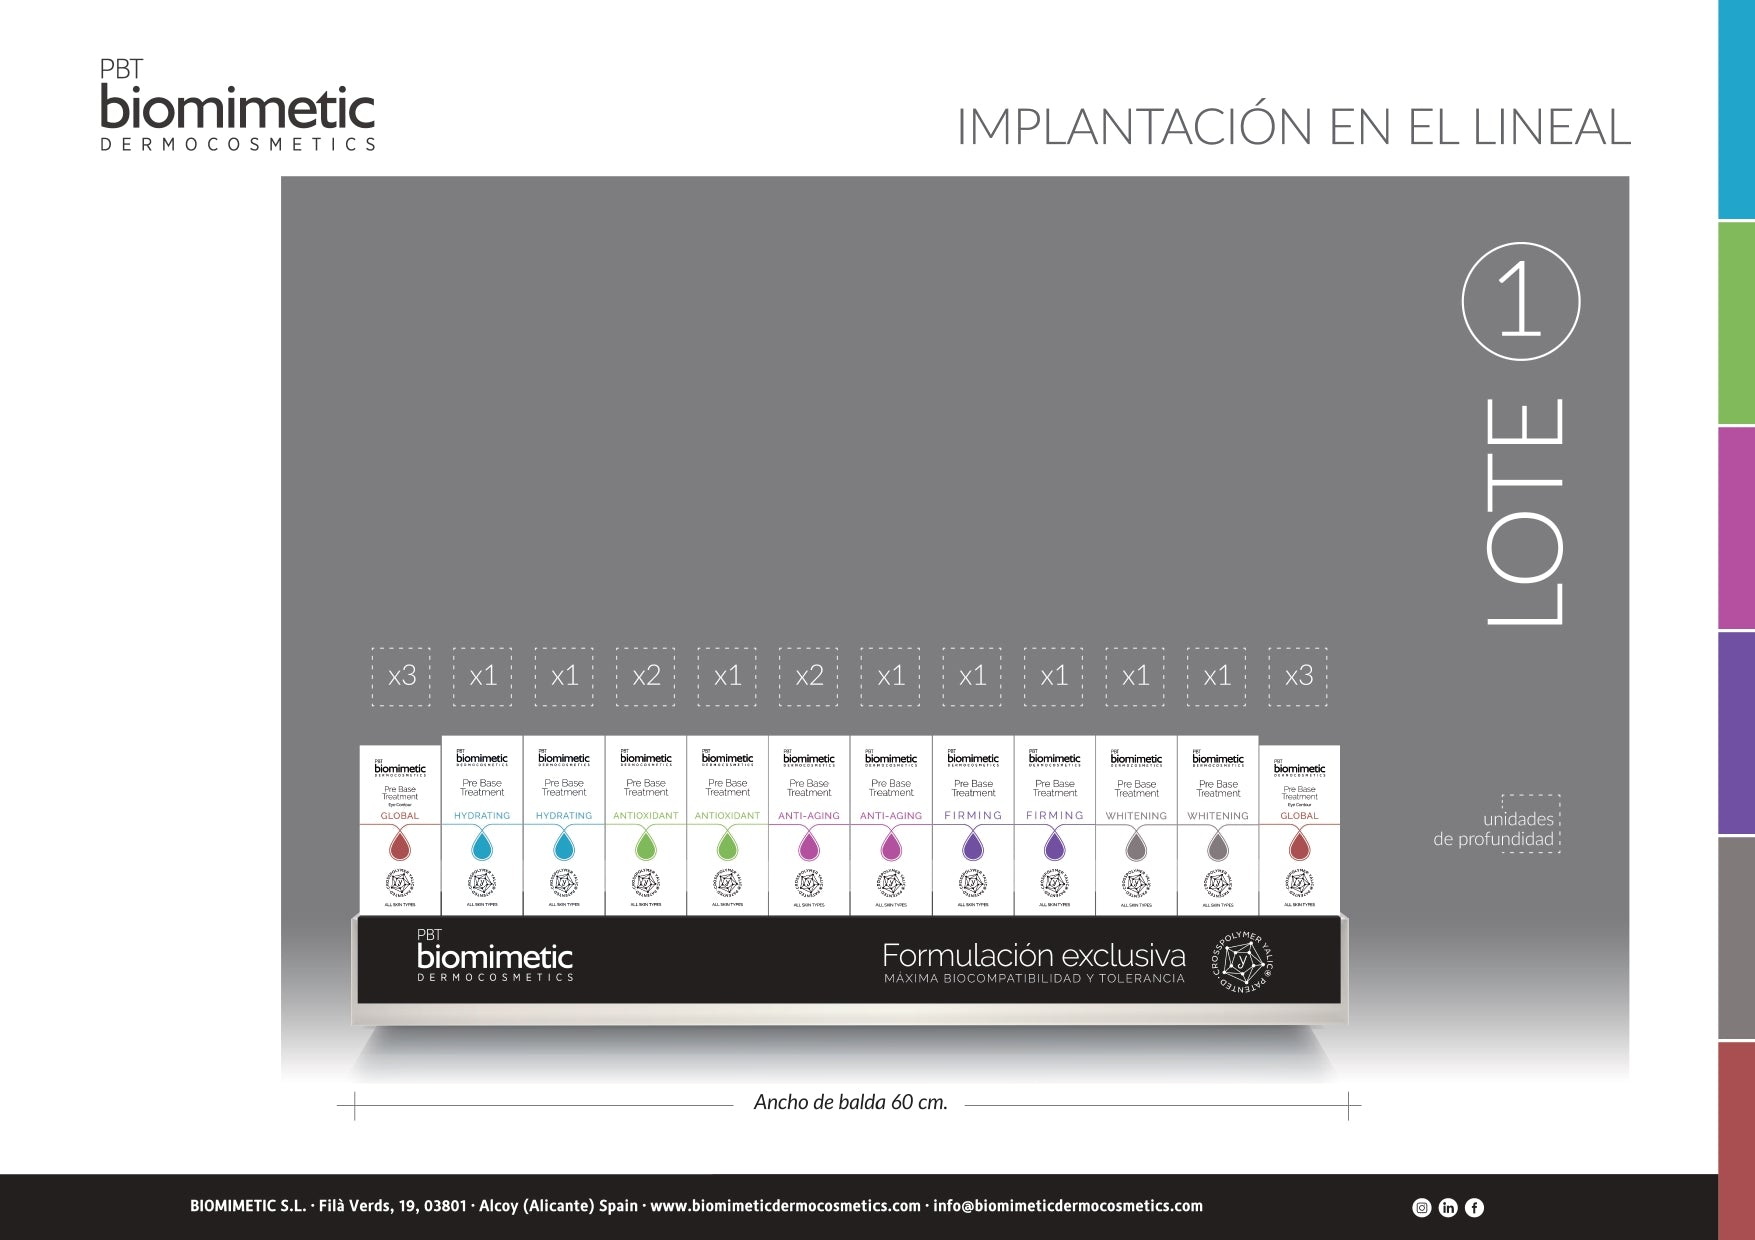 Lote 1 Biomimetic - 4qui